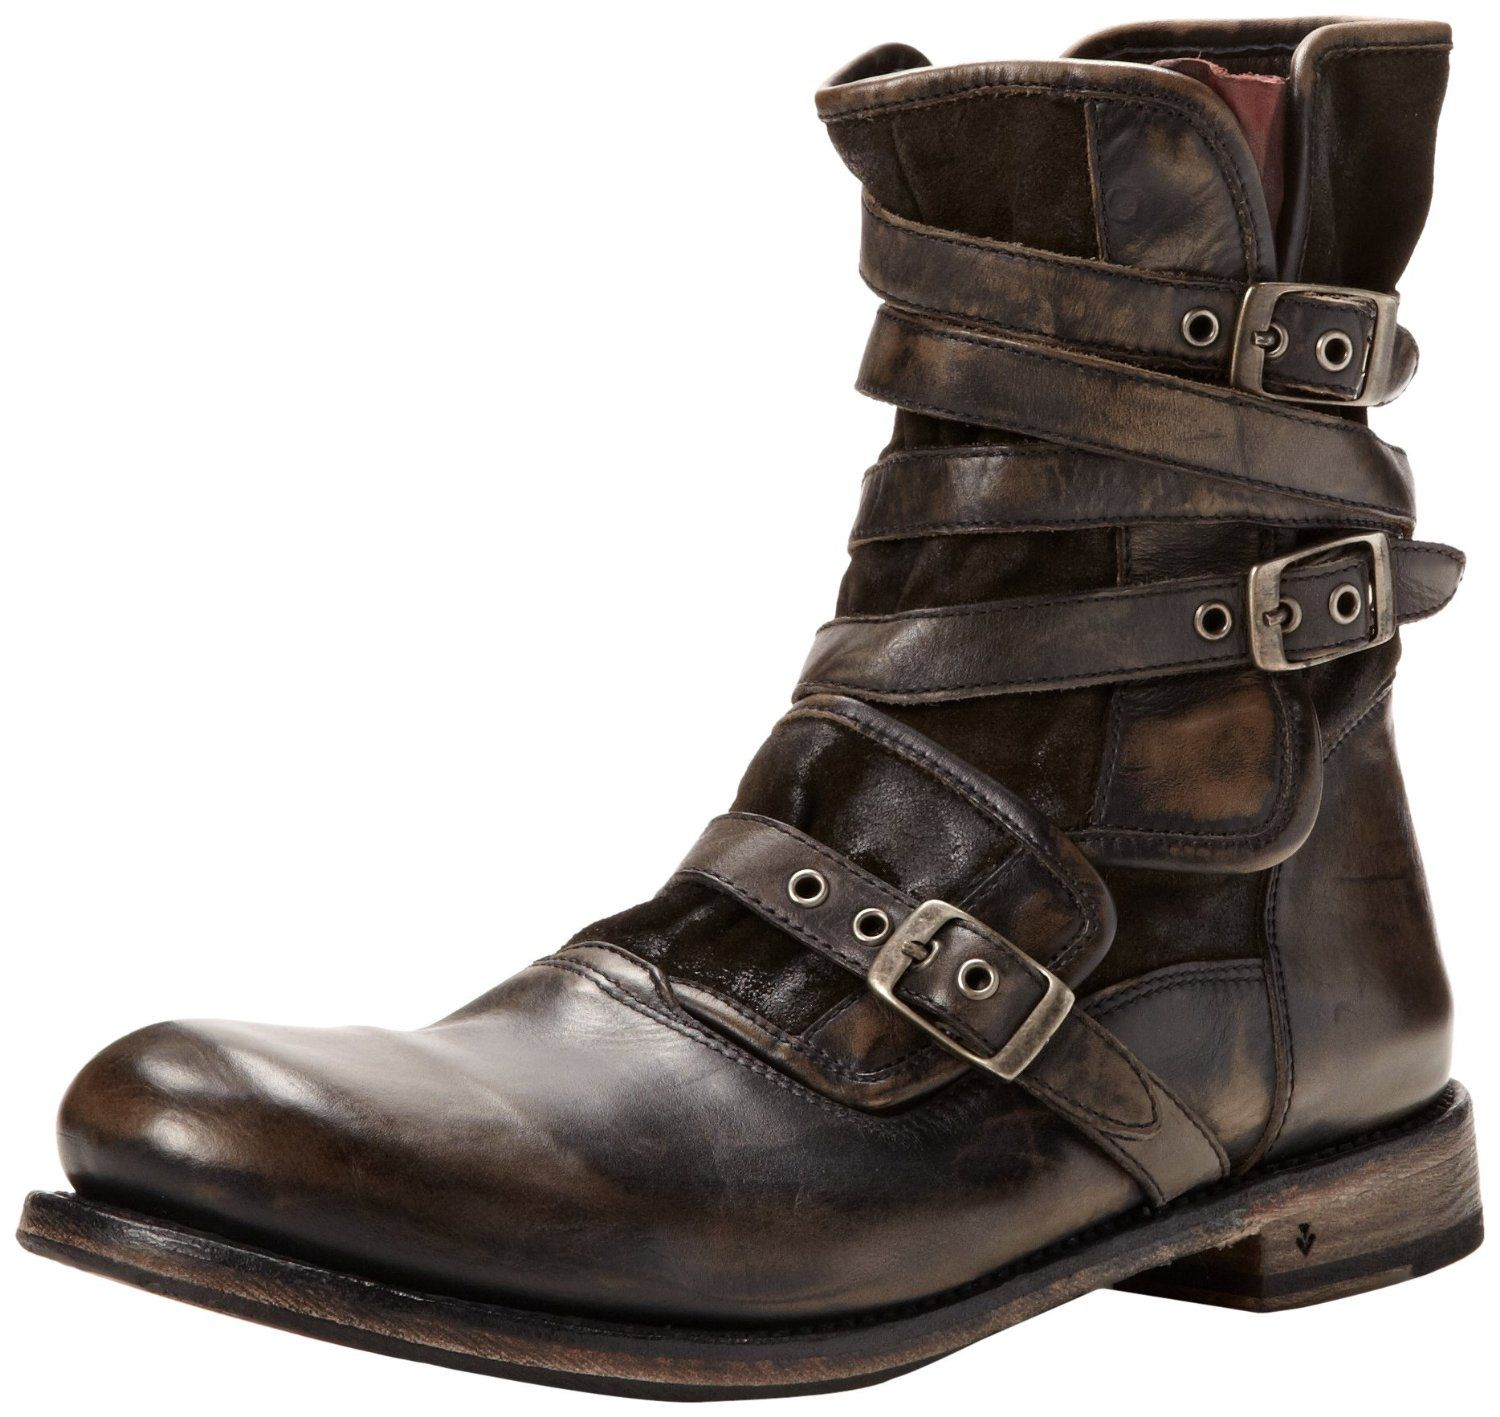 Boots for Men | Men's Gokey, Patagonia and Clarks Boots | Orvis ...